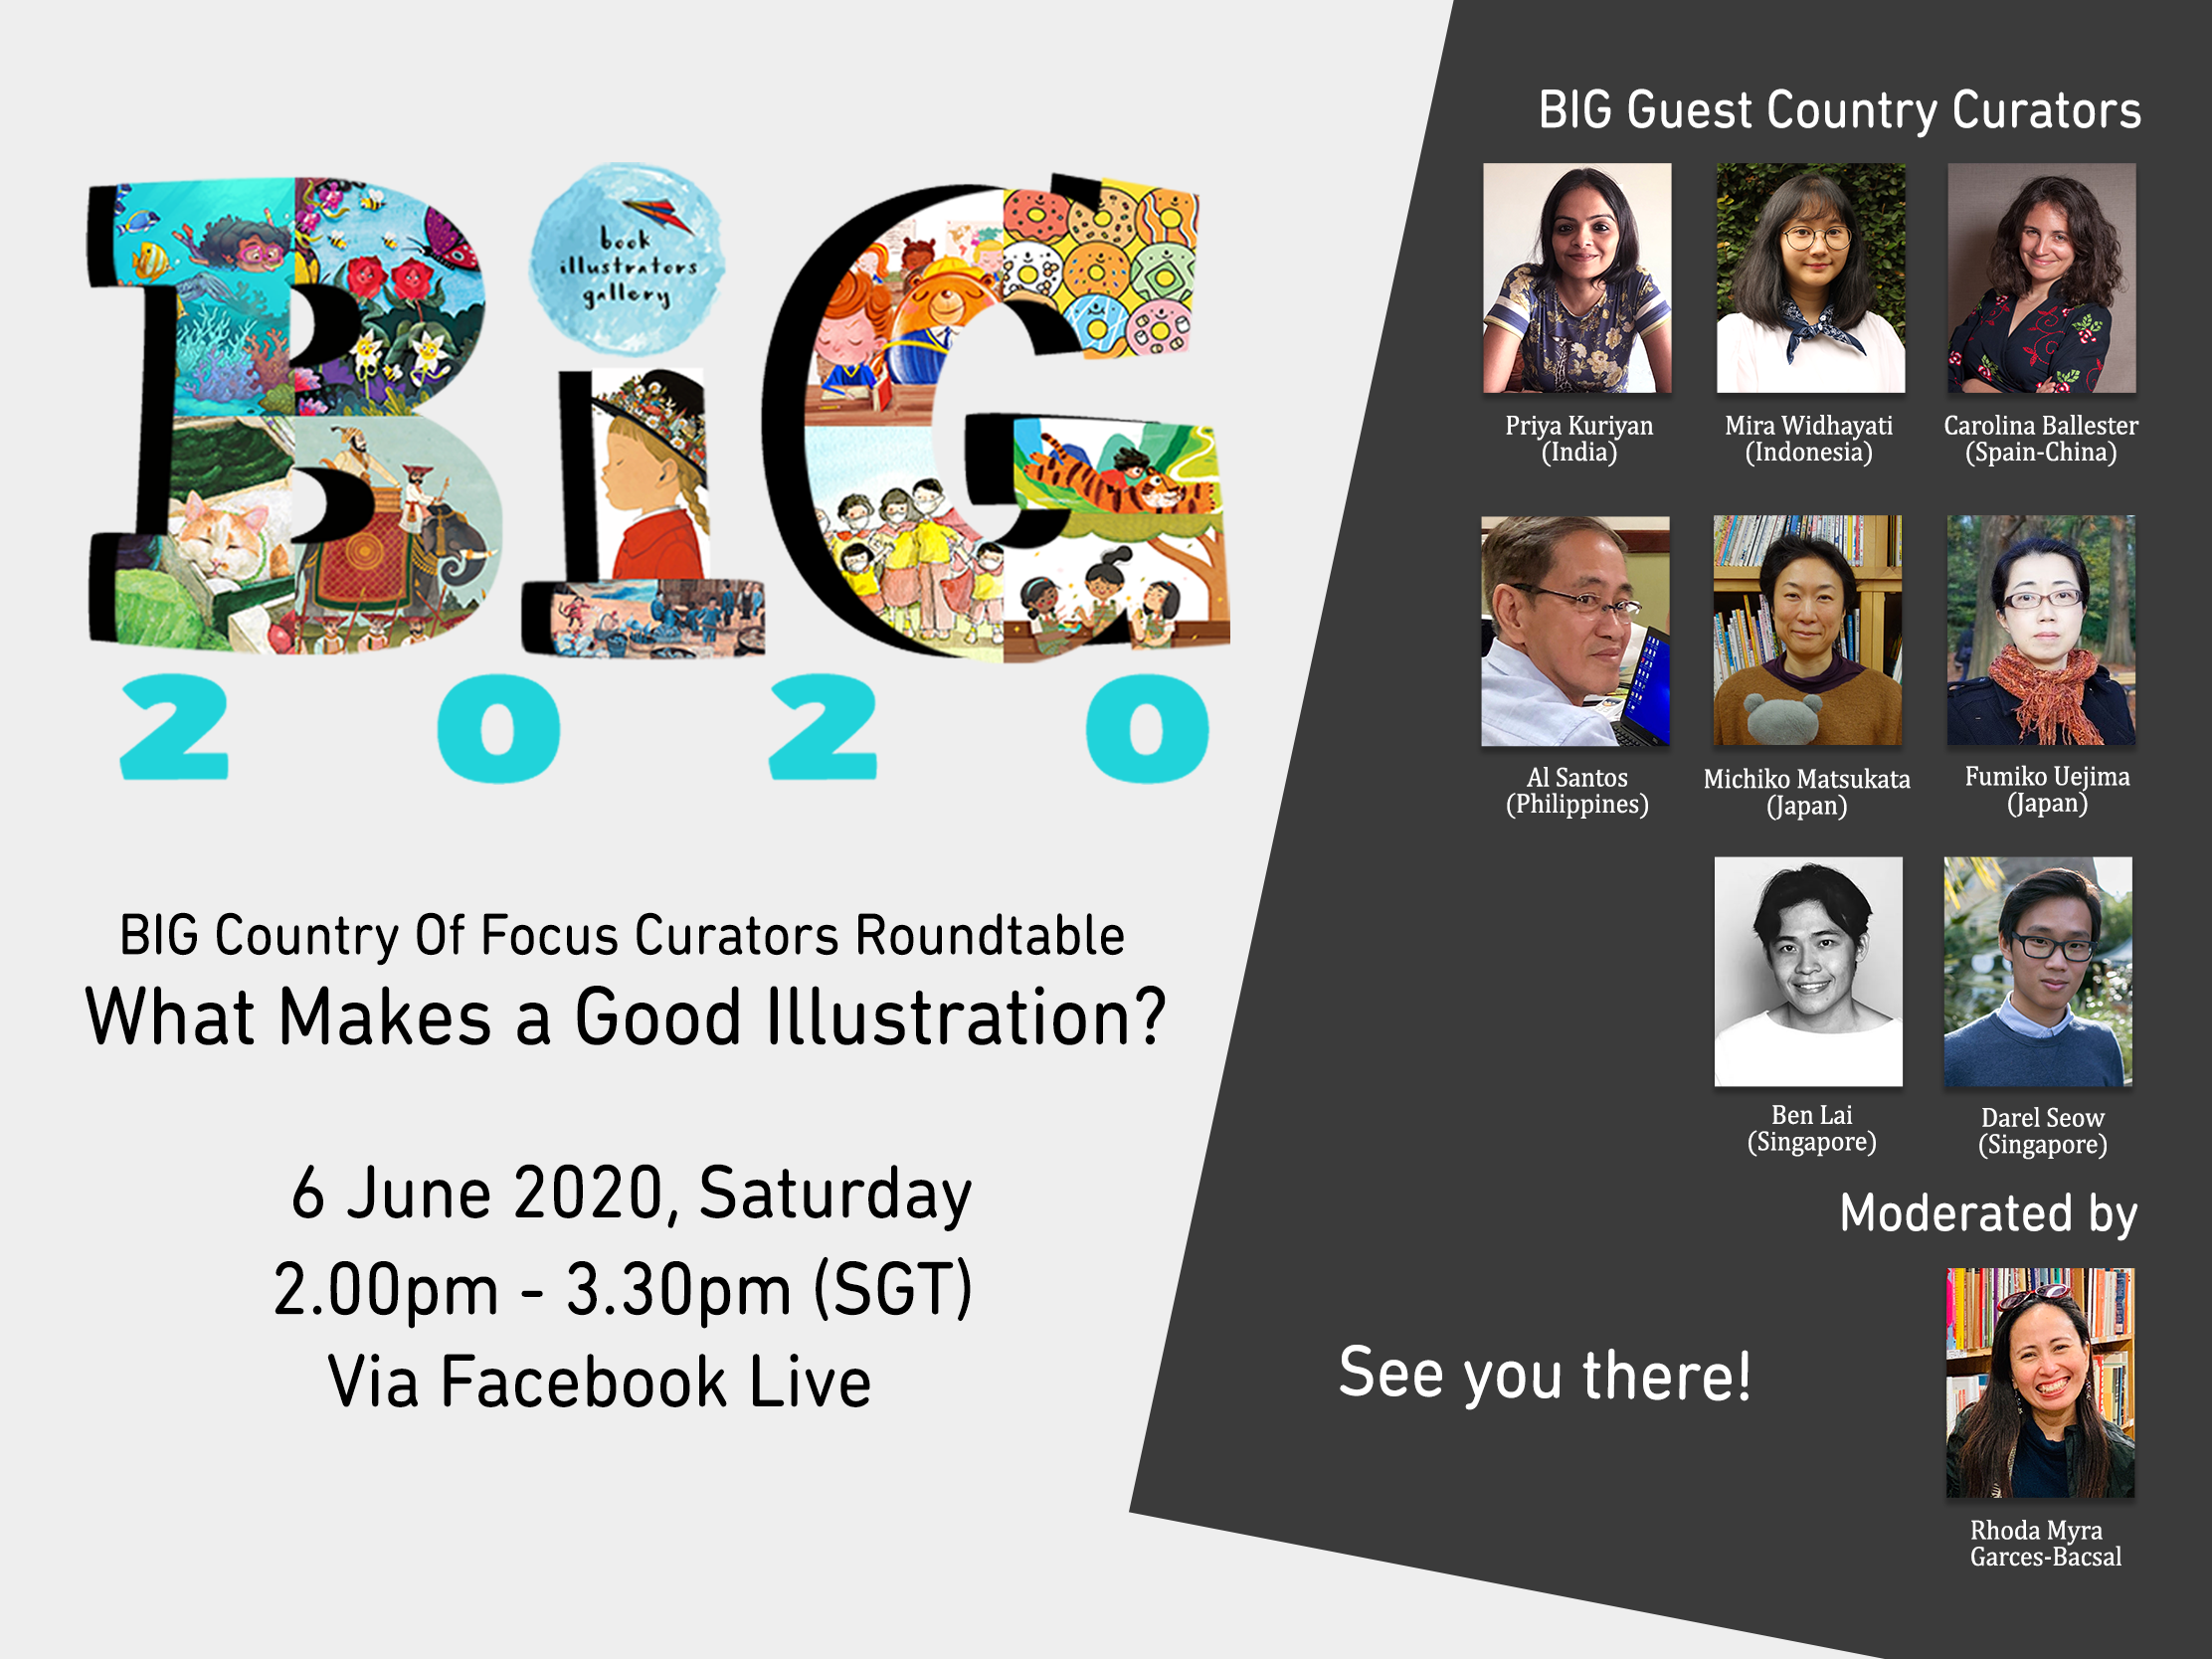 BIG Country of Focus Roundtable: What Makes a Good Illustration?